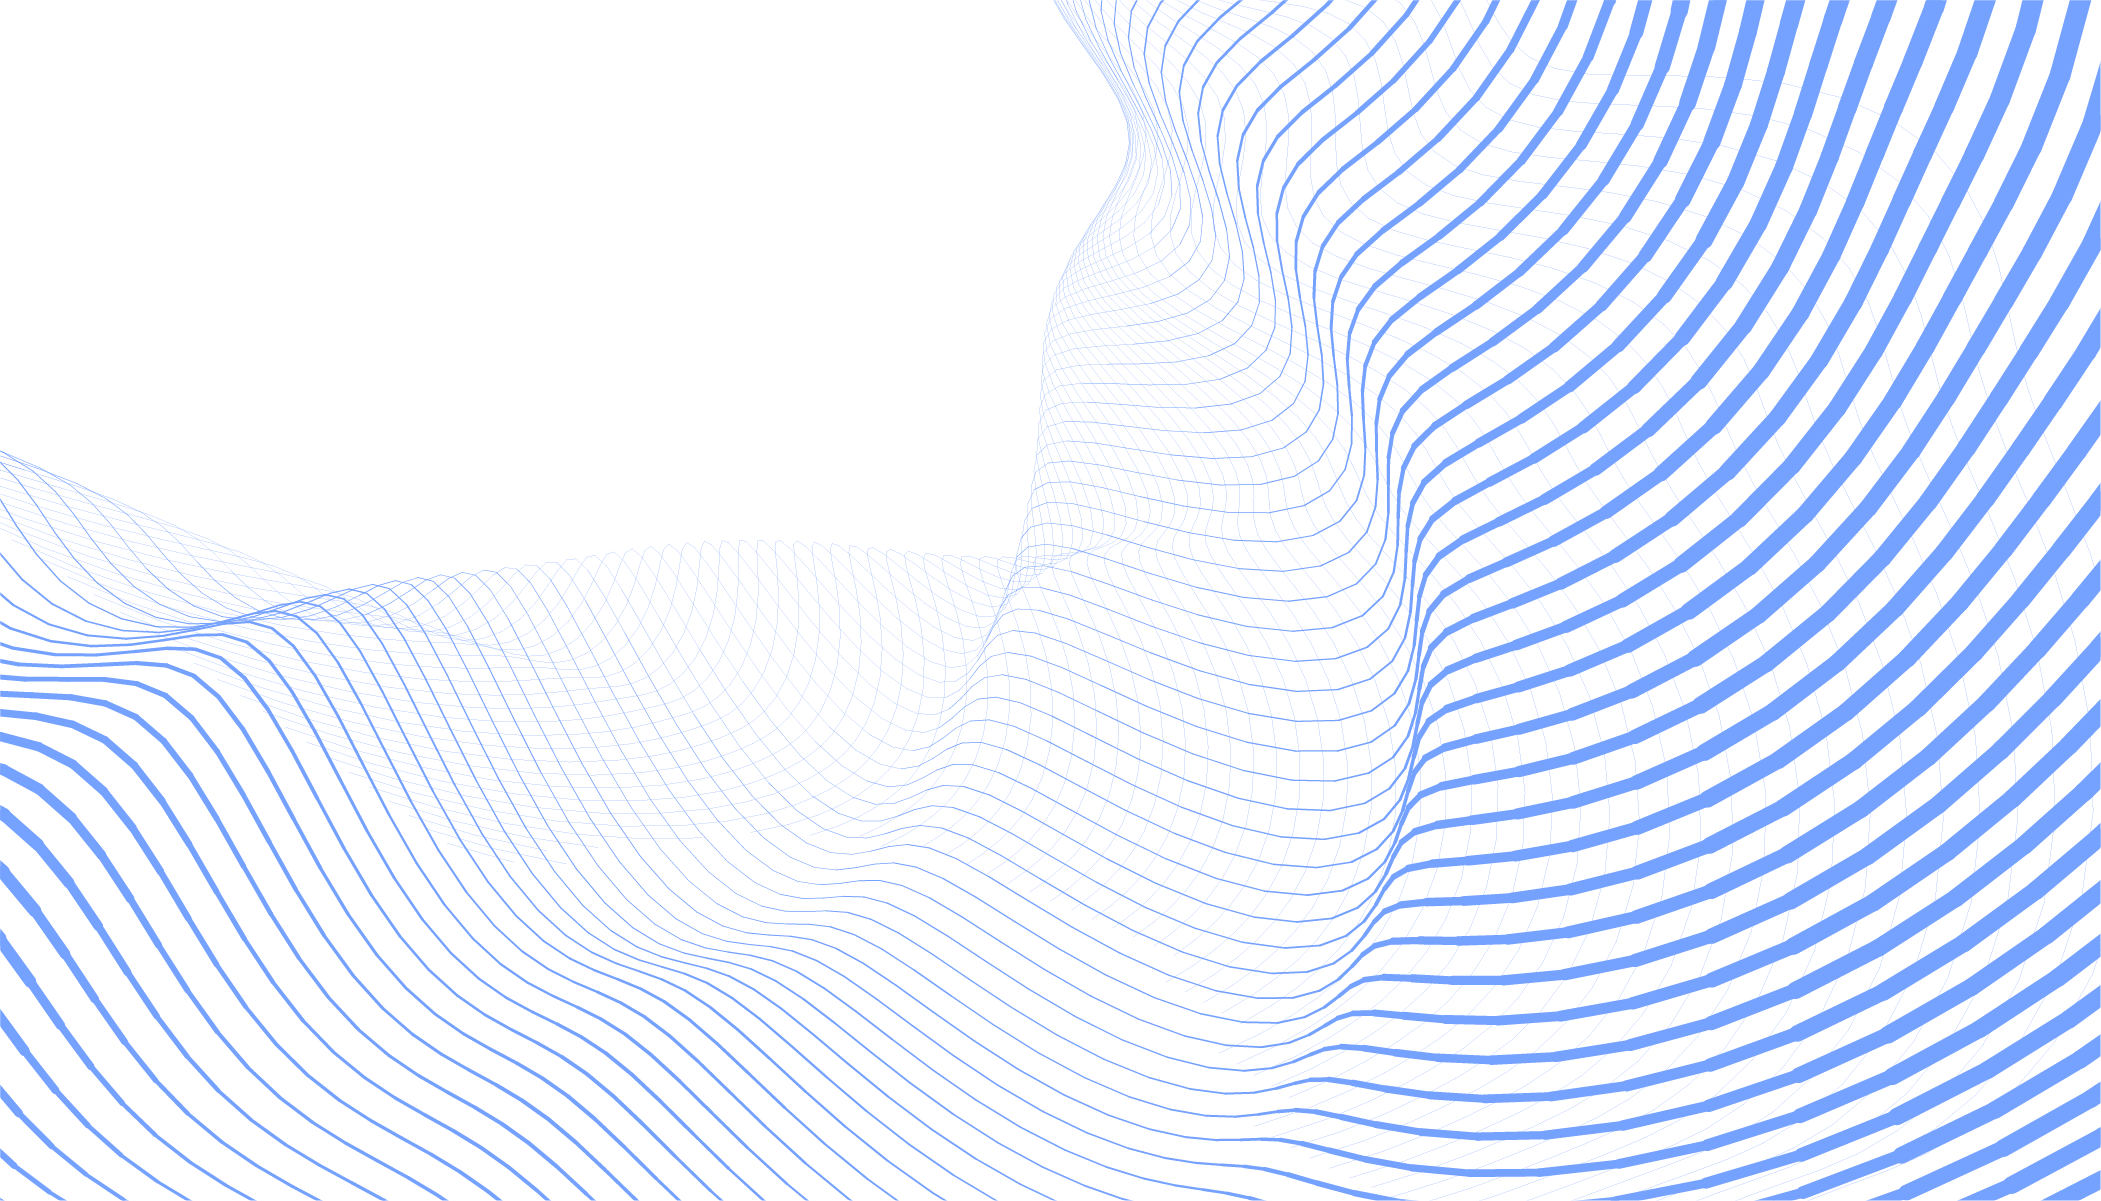 lines-bg-01.png